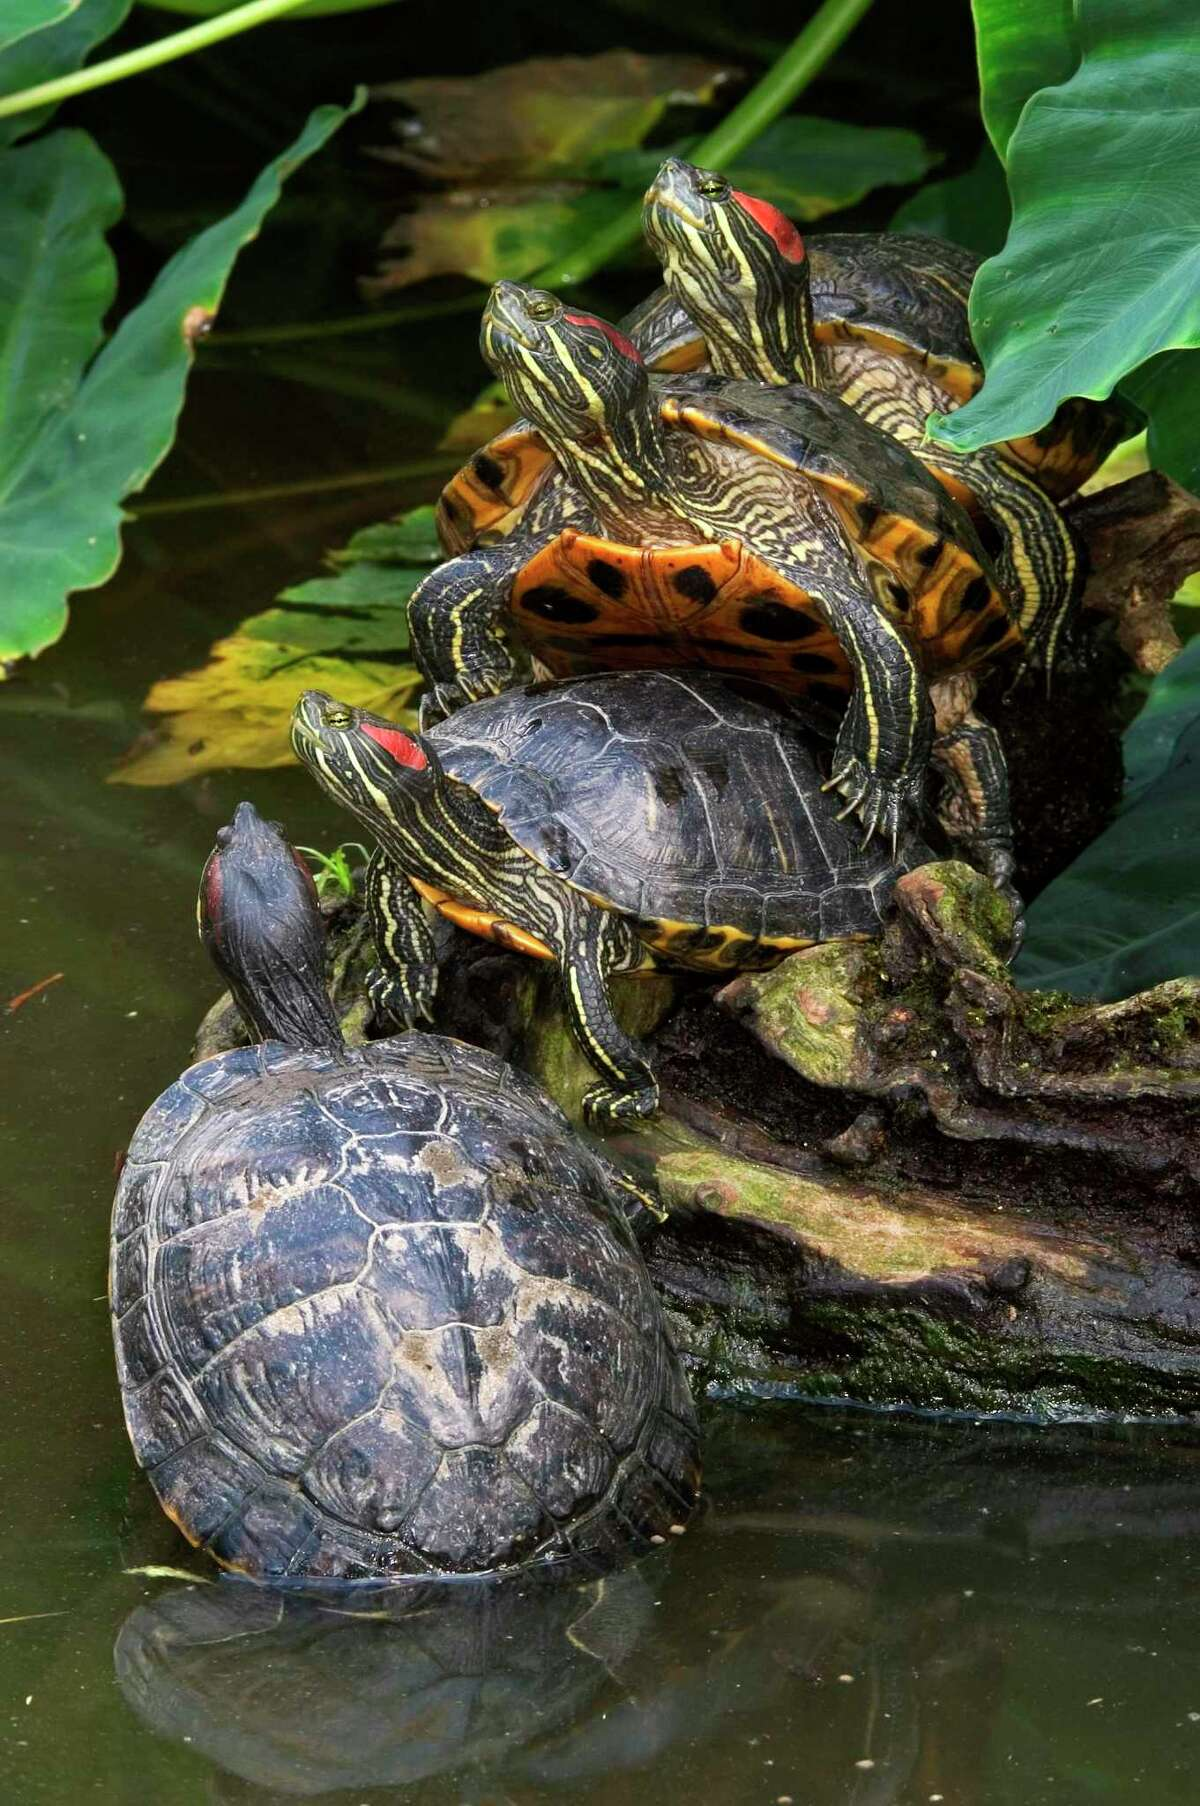 Red-eared sliders have a knack for overtaking other turtles and upsetting ecosystems when introduced to areas outside their own native habitat.